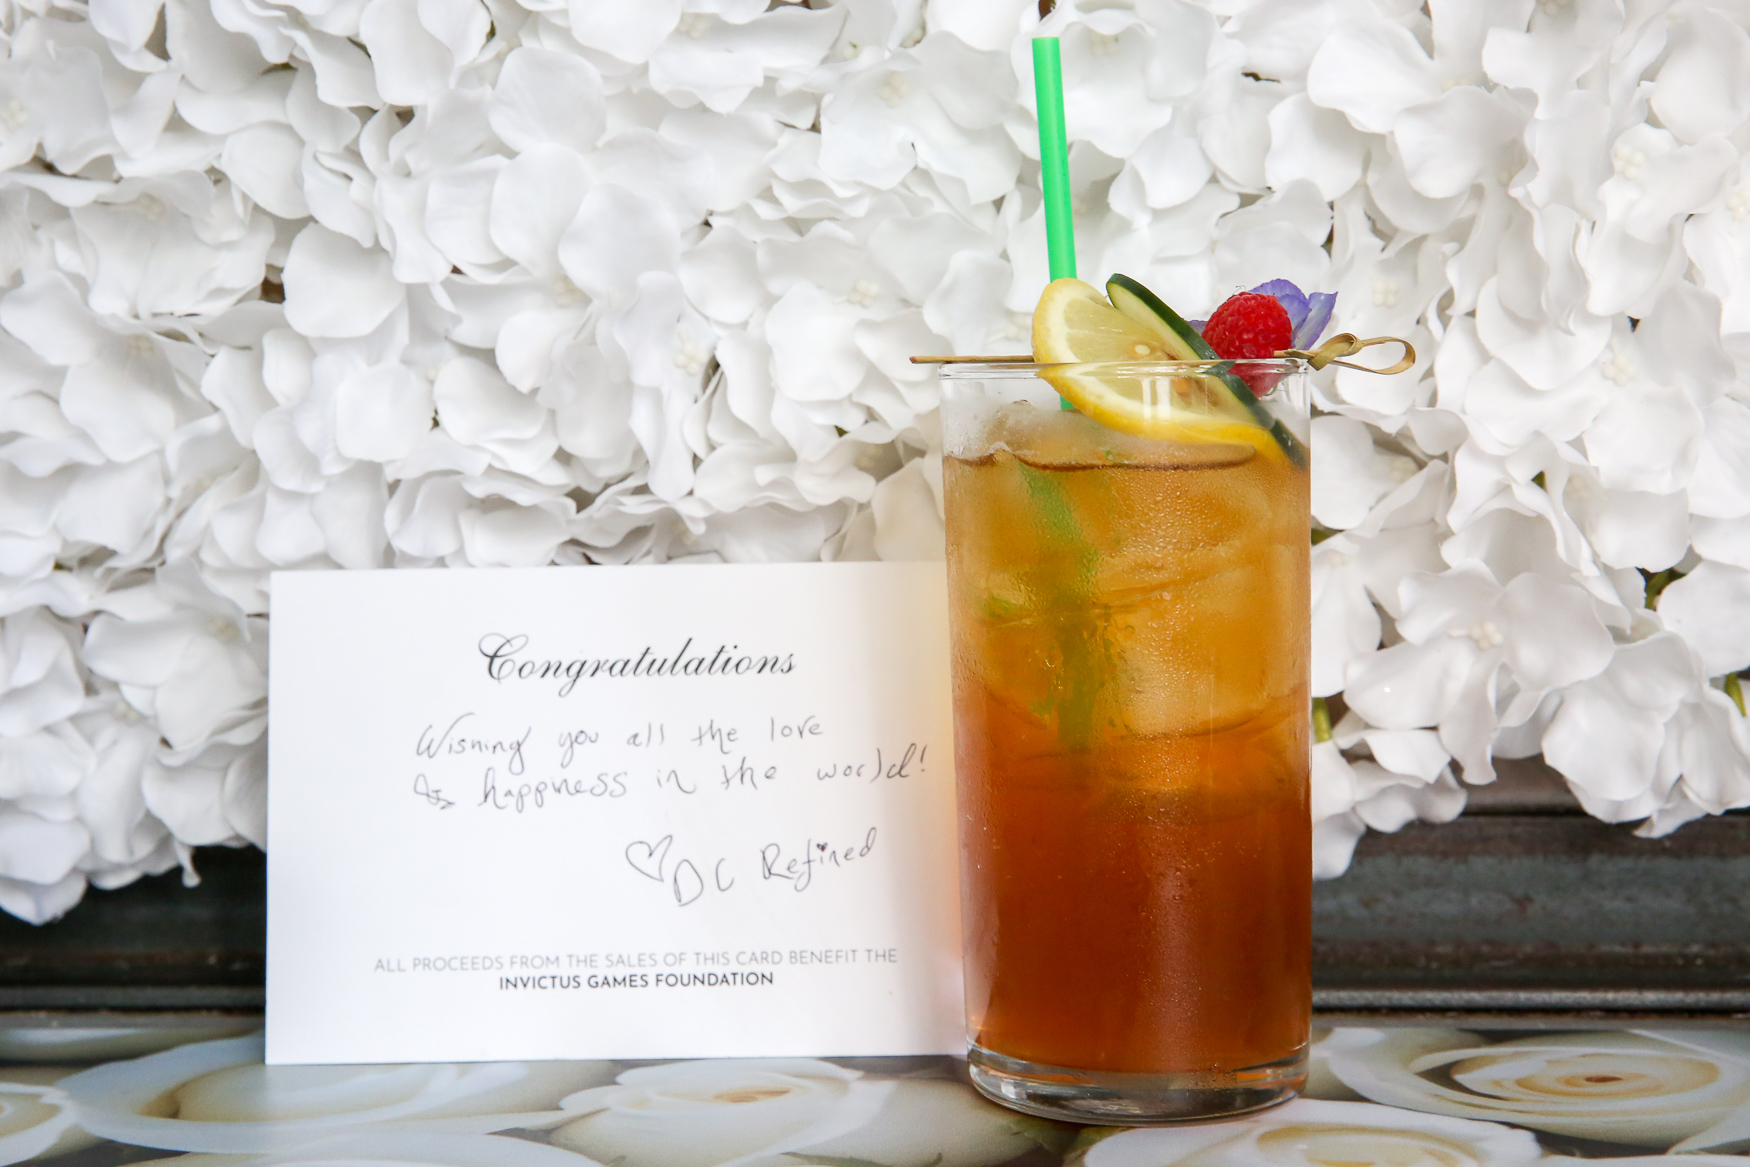 Prince Harry will marry Meghan Markle on May 19, but you can now toast the couple at the Royal Pop-Up Bar from Drink Company. Located at{ }1843 7th Street NW in Shaw, the pop-up bar features wedding-themed drinks, a corgi throne room and plenty of selfie opportunities. The bar will be open until May 20. (Amanda Andrade-Rhoades/DC Refined)